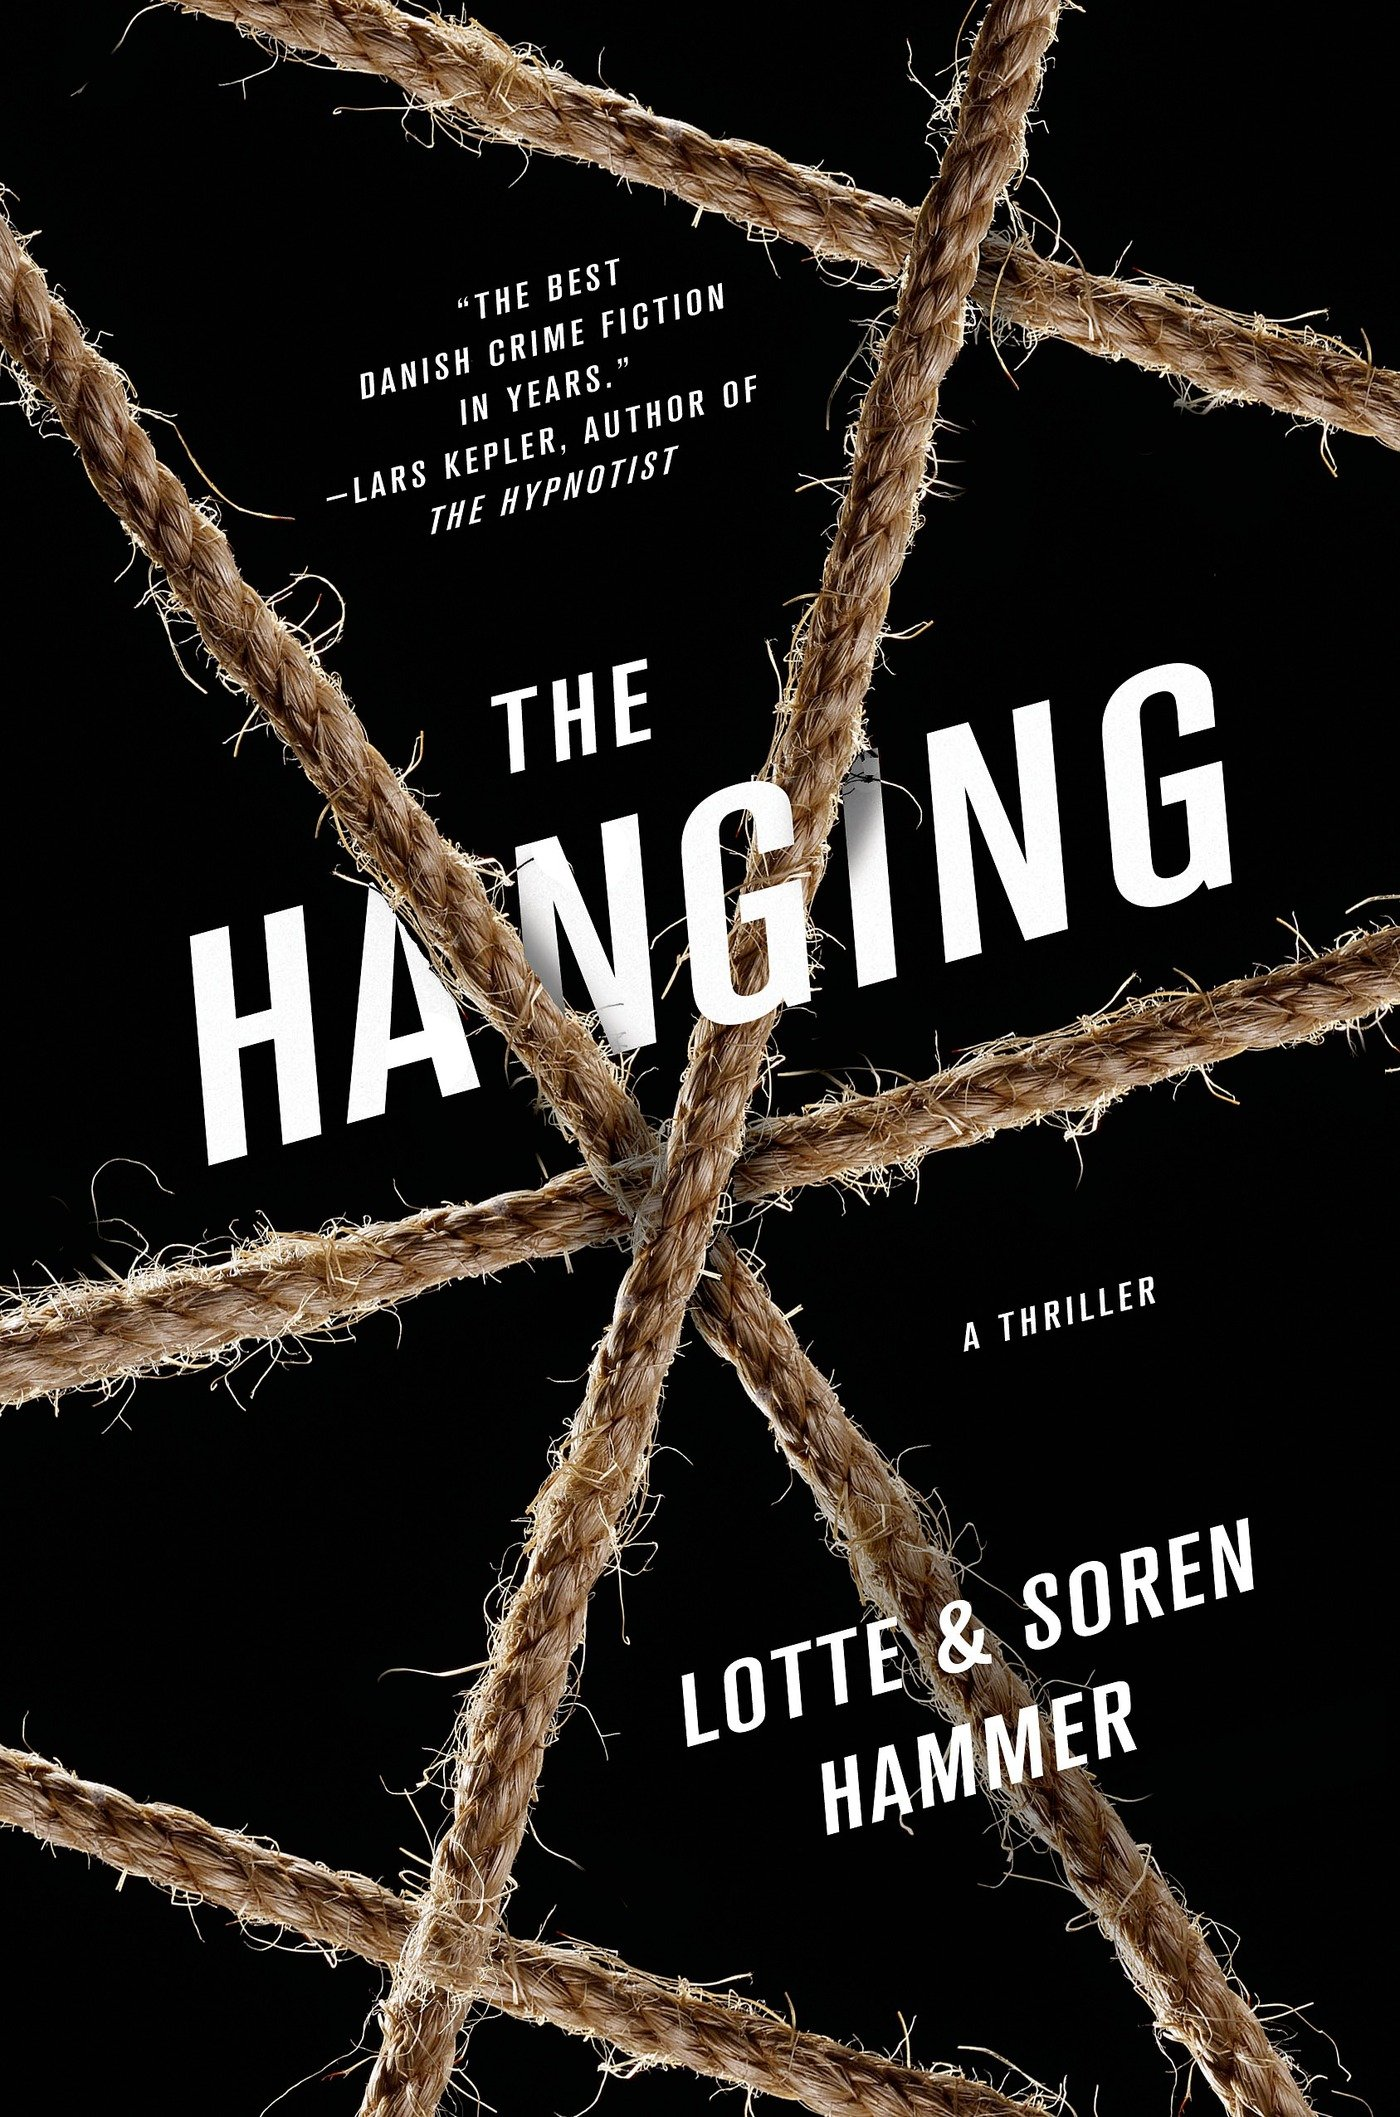 Book Cover of The Hanging